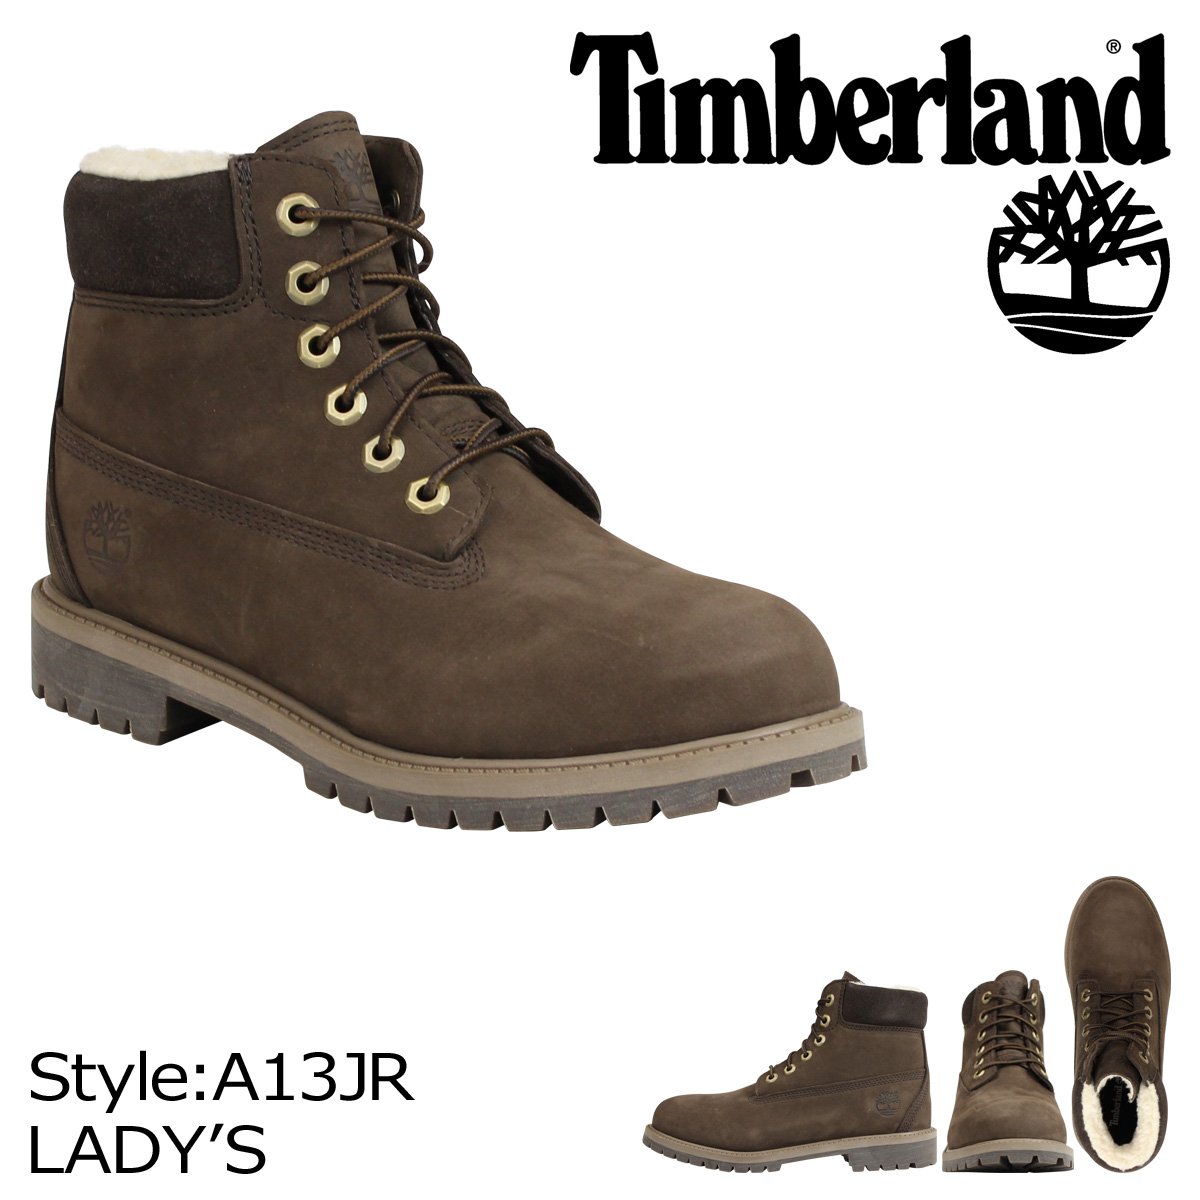 d5777500b32 Timberland-Timberland women's JUNIOR 6INCH PREMIUM WP BOOT boots 6 inch  premium waterproof A13JR Brown [10/15 new in stock]